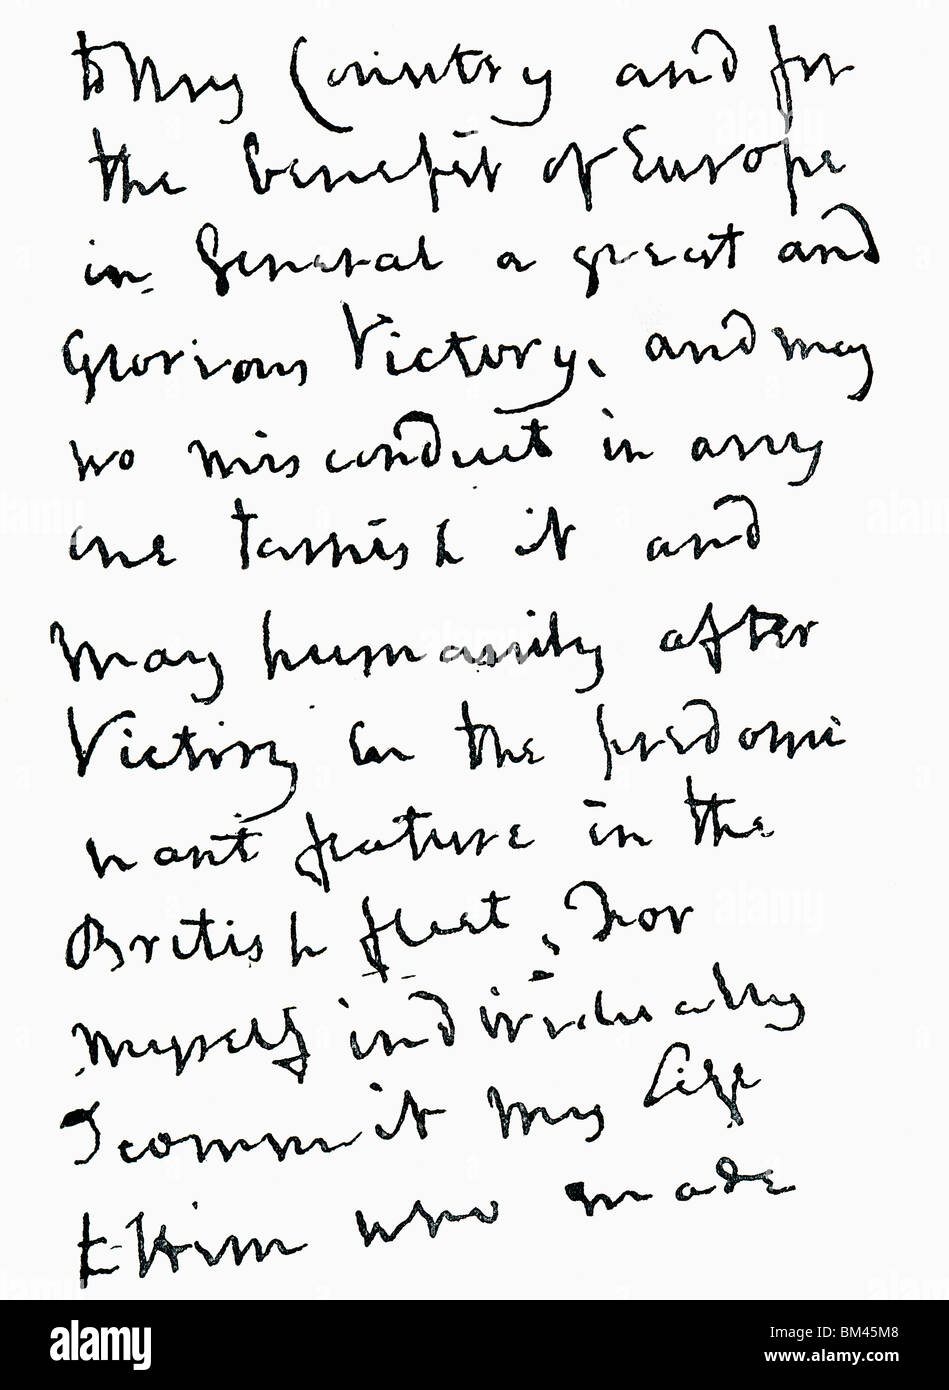 Part of letter written by Admiral Horatio Nelson just before the Battle of Trafalgar. - Stock Image